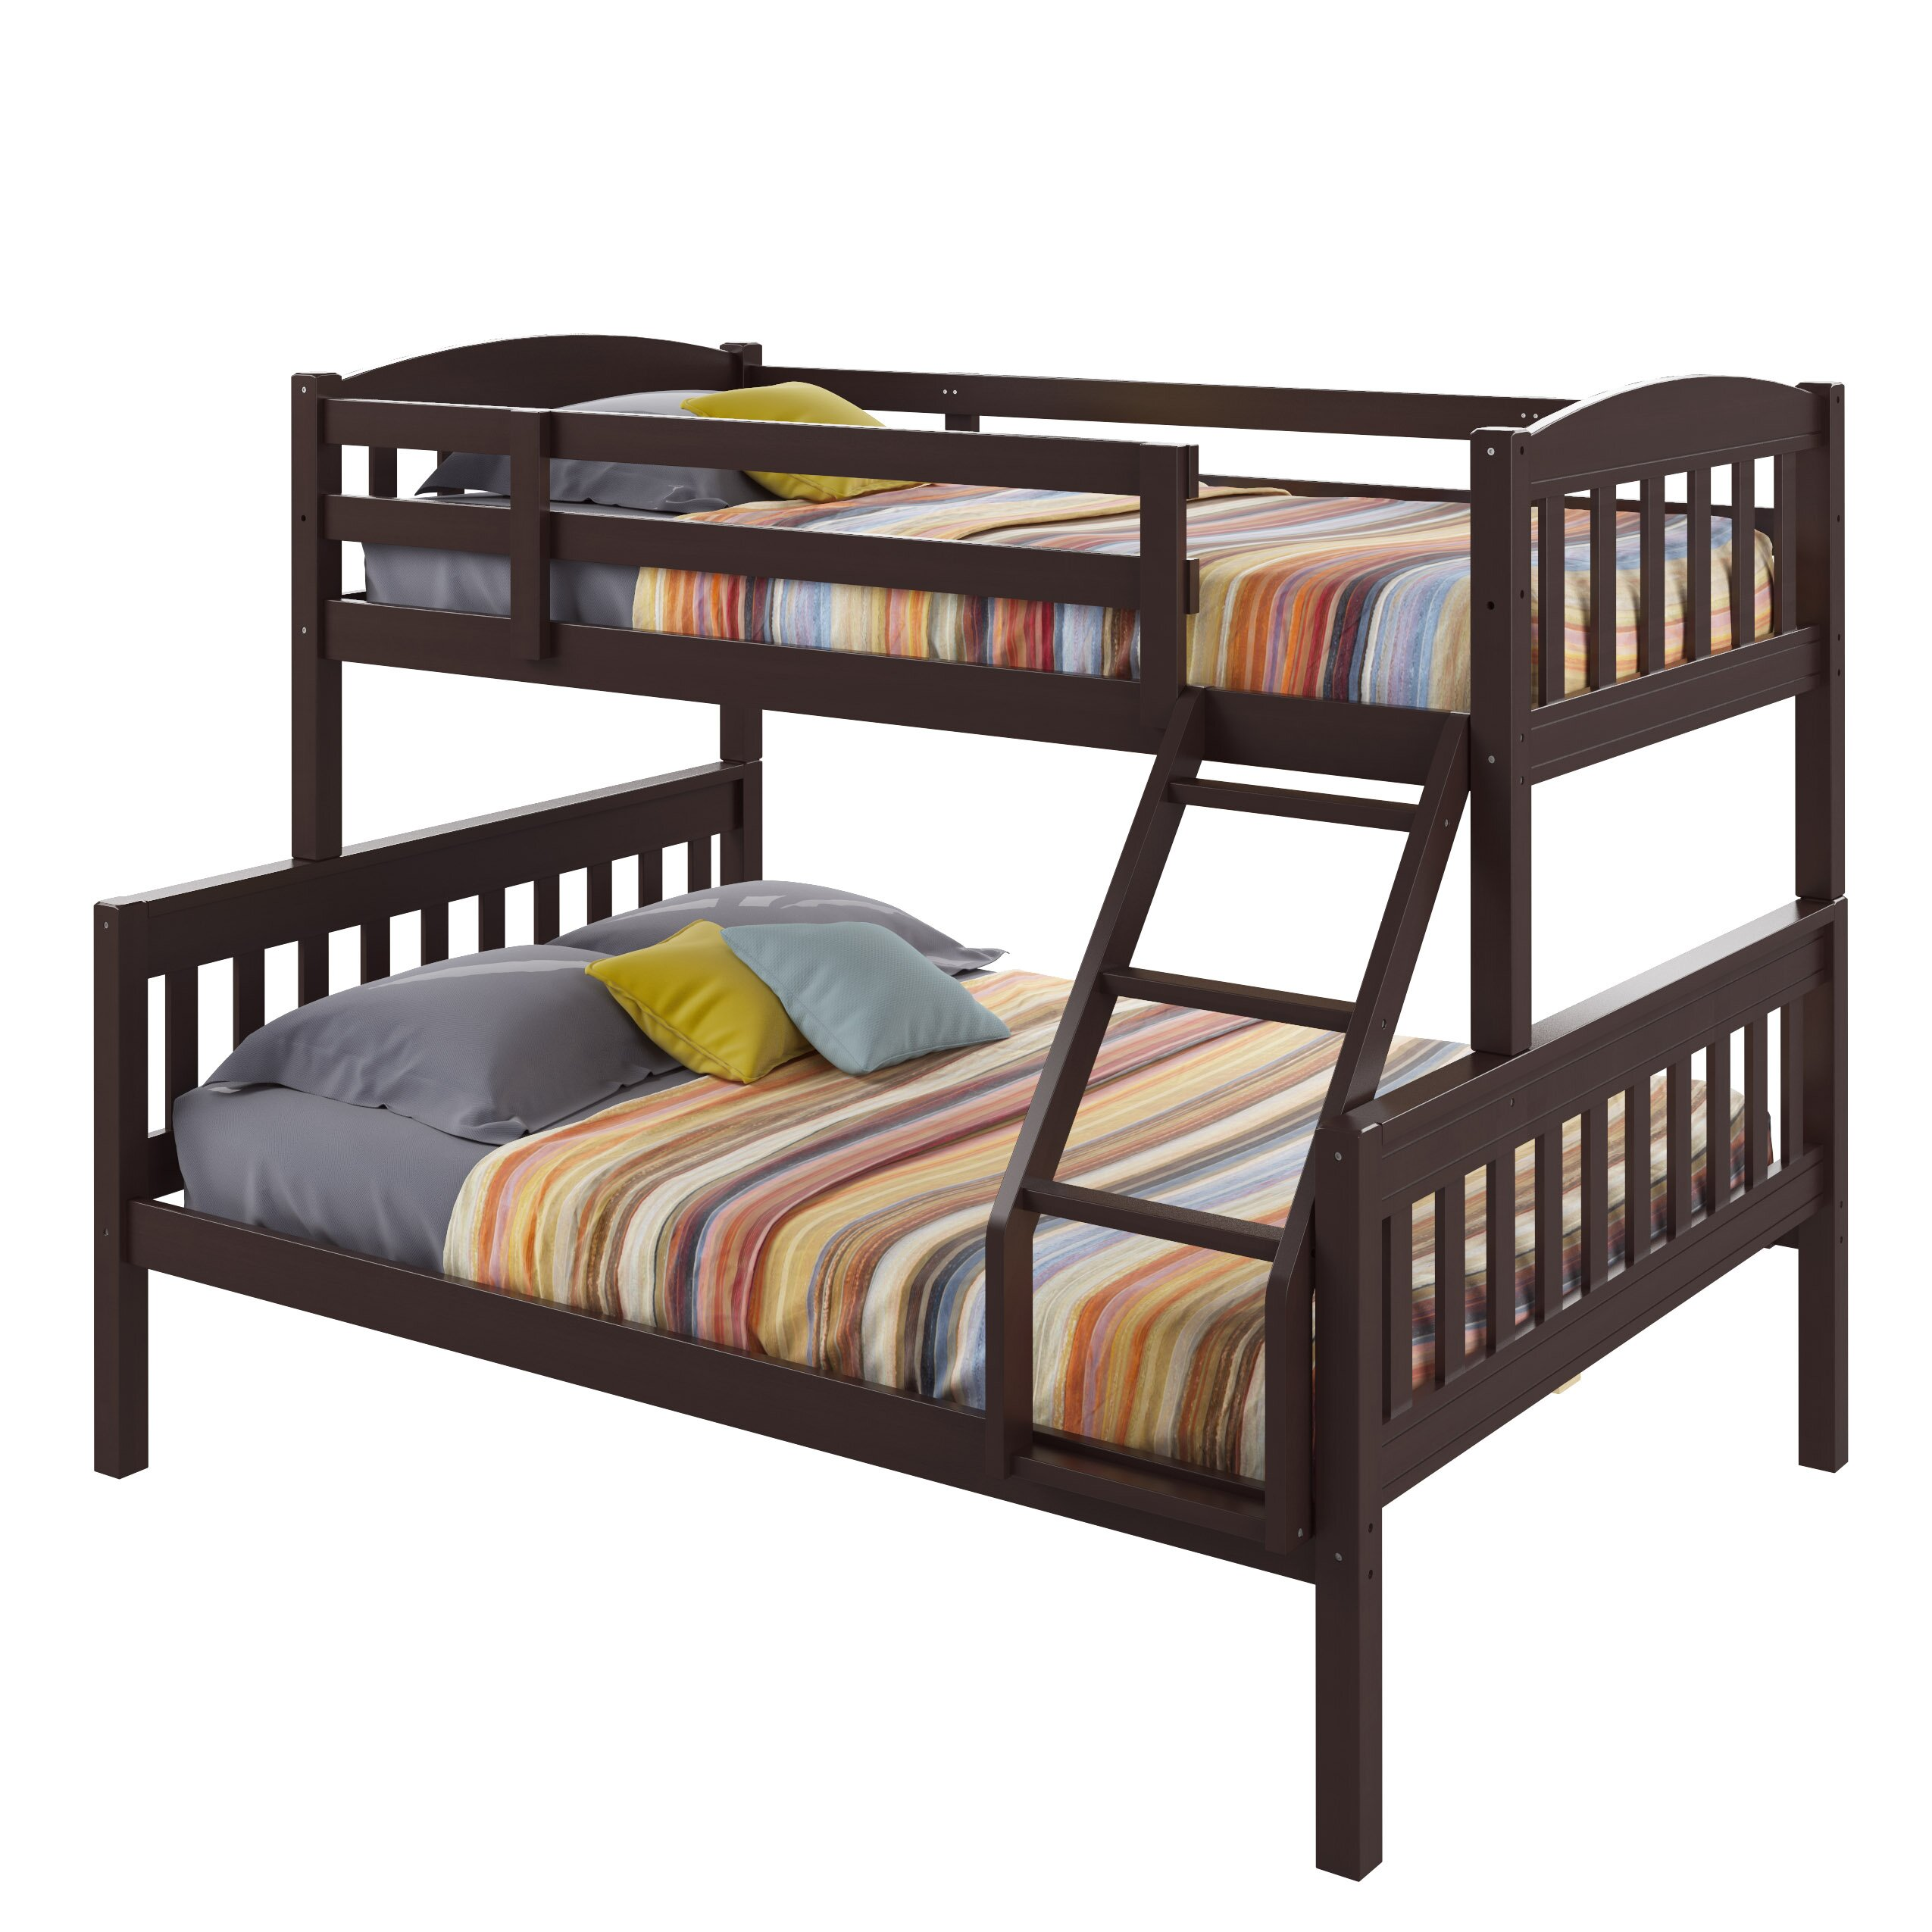 corliving apollo twin over full bunk bed reviews wayfair. Black Bedroom Furniture Sets. Home Design Ideas